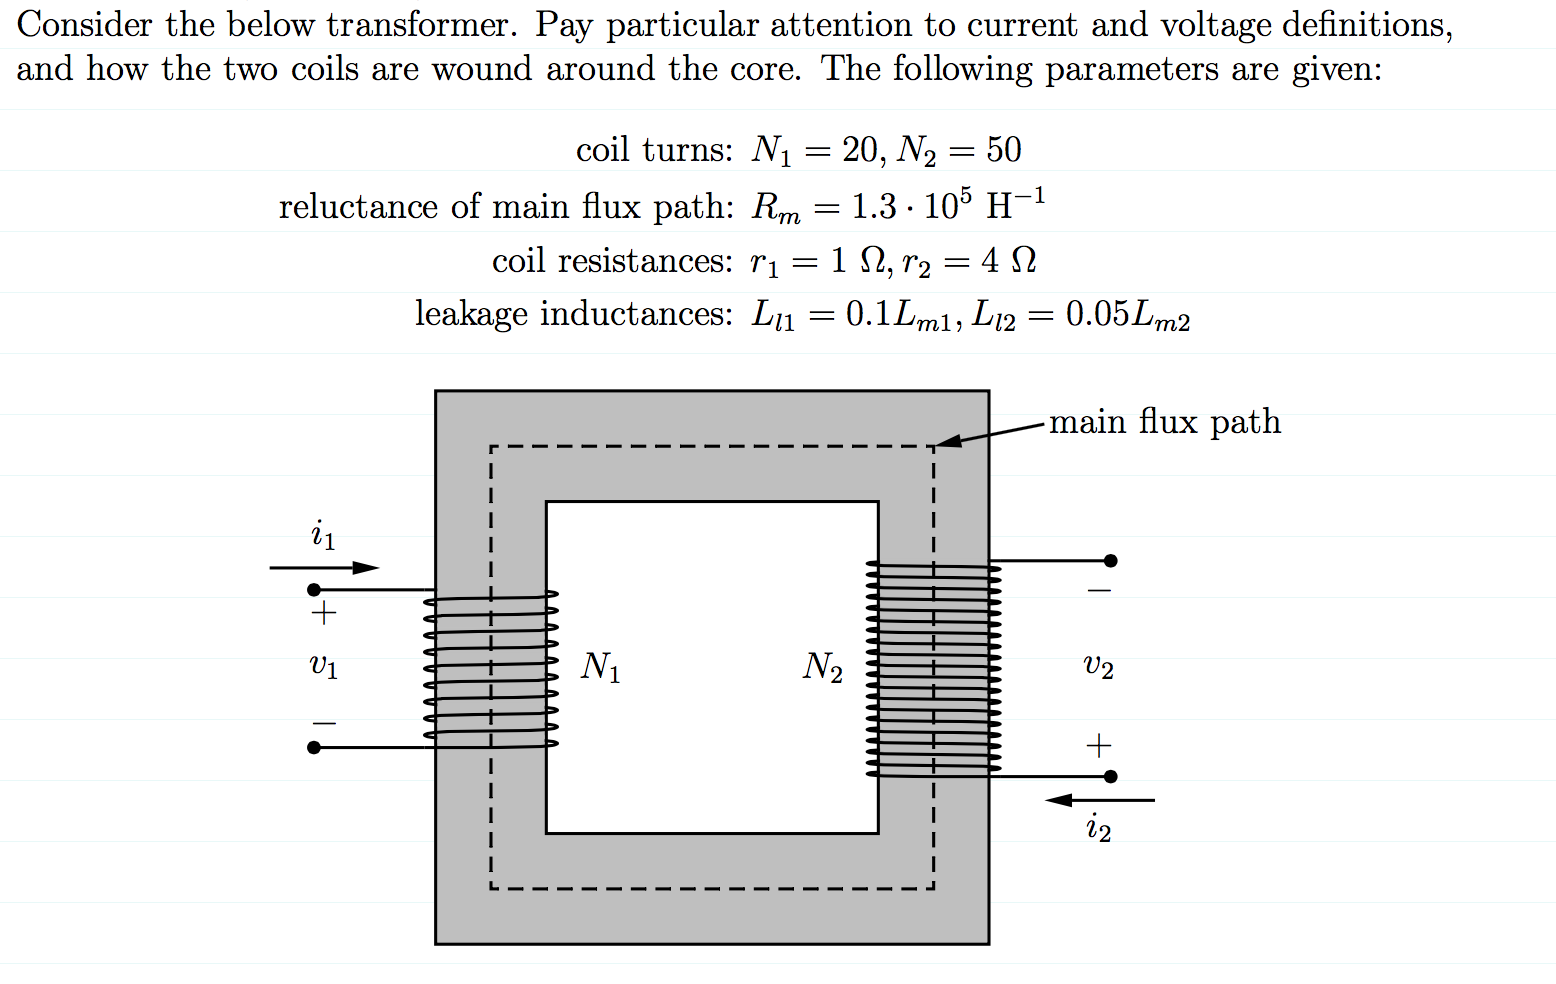 Transformer Schematic Drawing Trusted Wiring Diagram Power Solved 1 Draw The Equivalent Circuit Of Consider Below